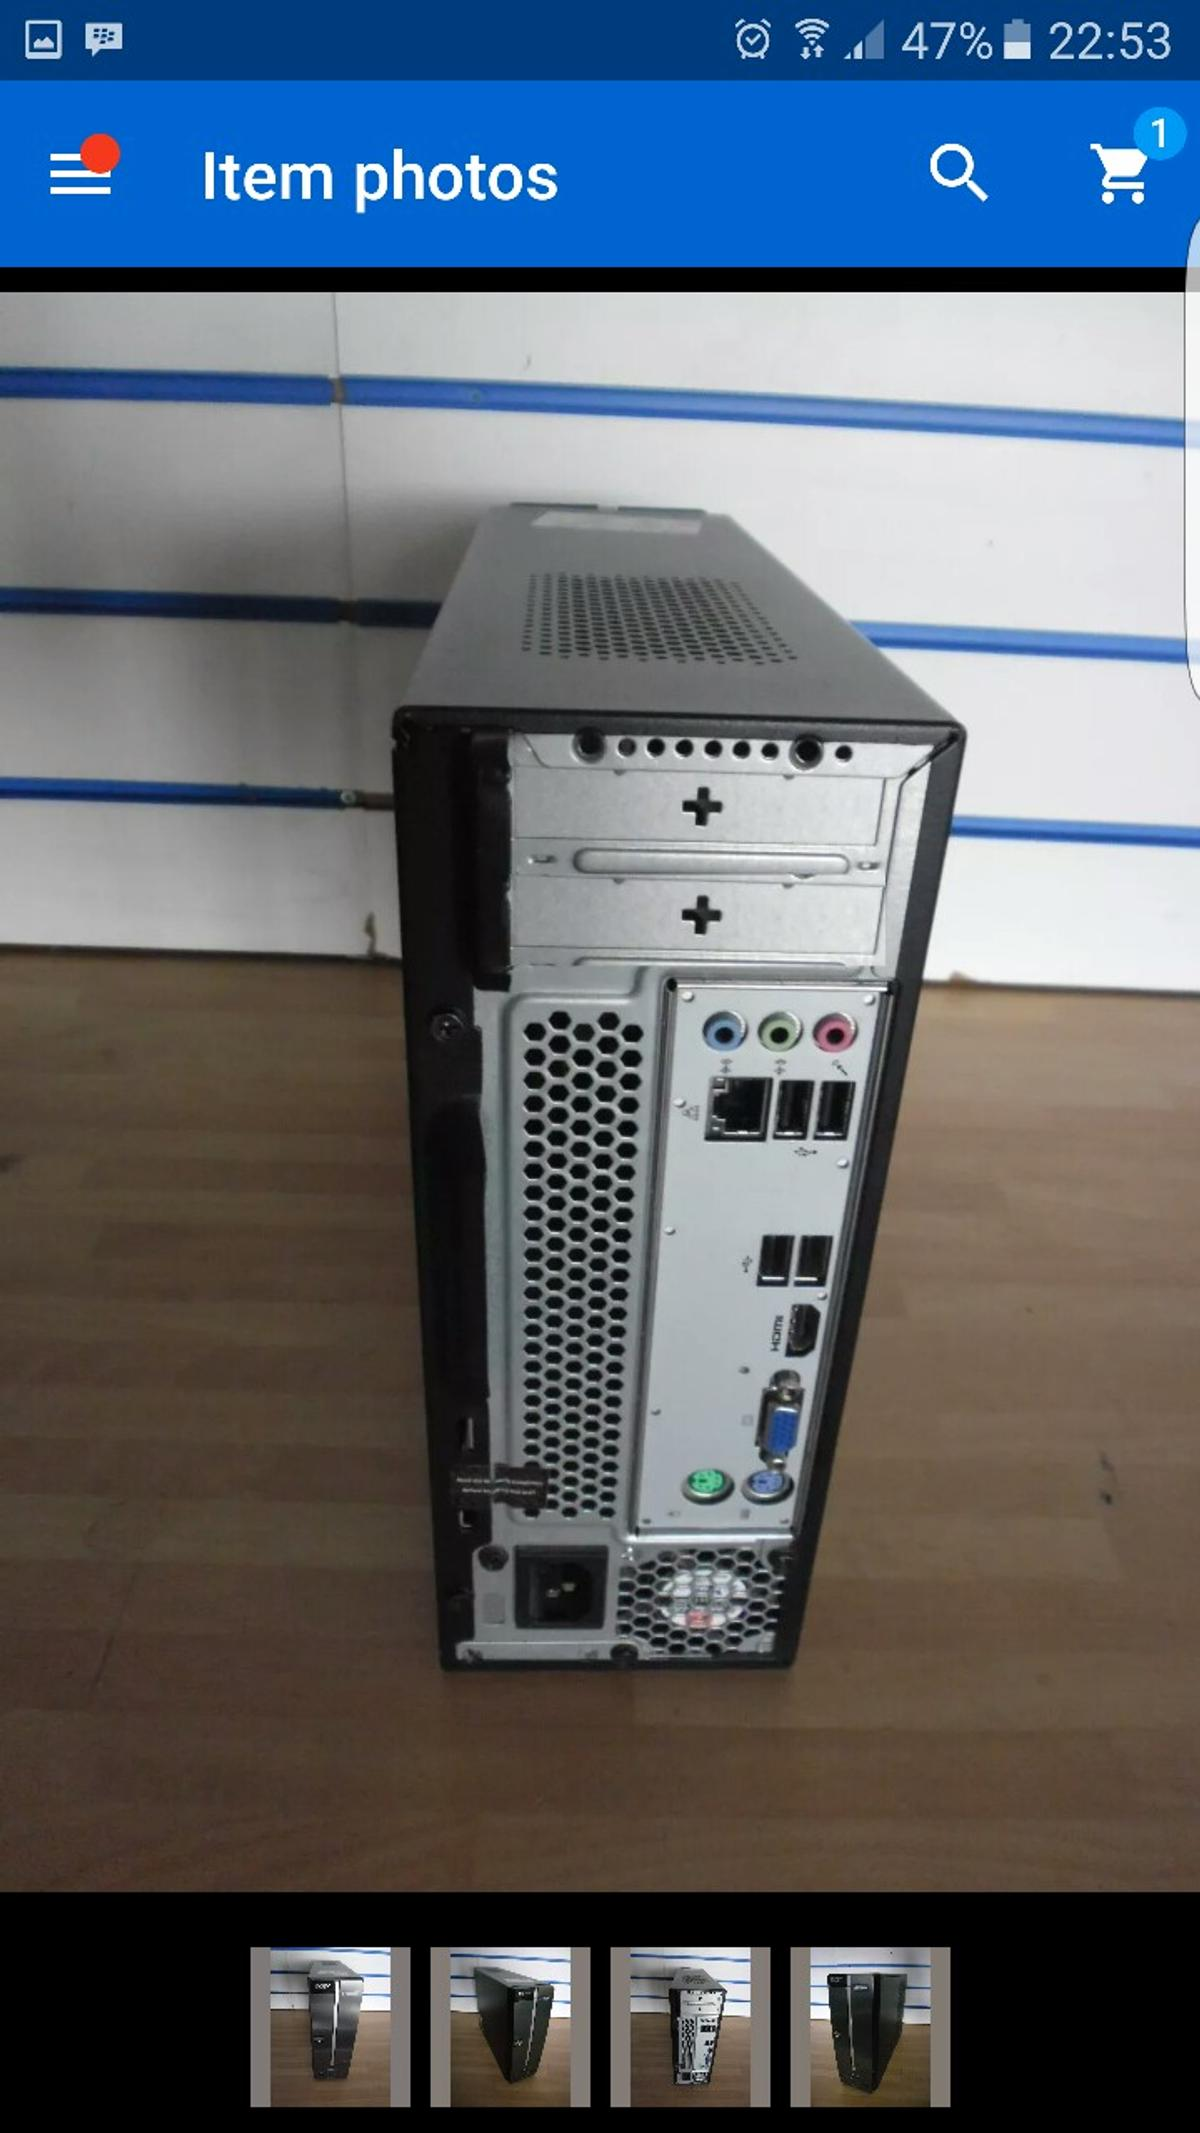 Acer Aspire Xc100 Small Form Factor Pc In Tf7 Madeley Fur 90 00 Zum Verkauf Shpock At